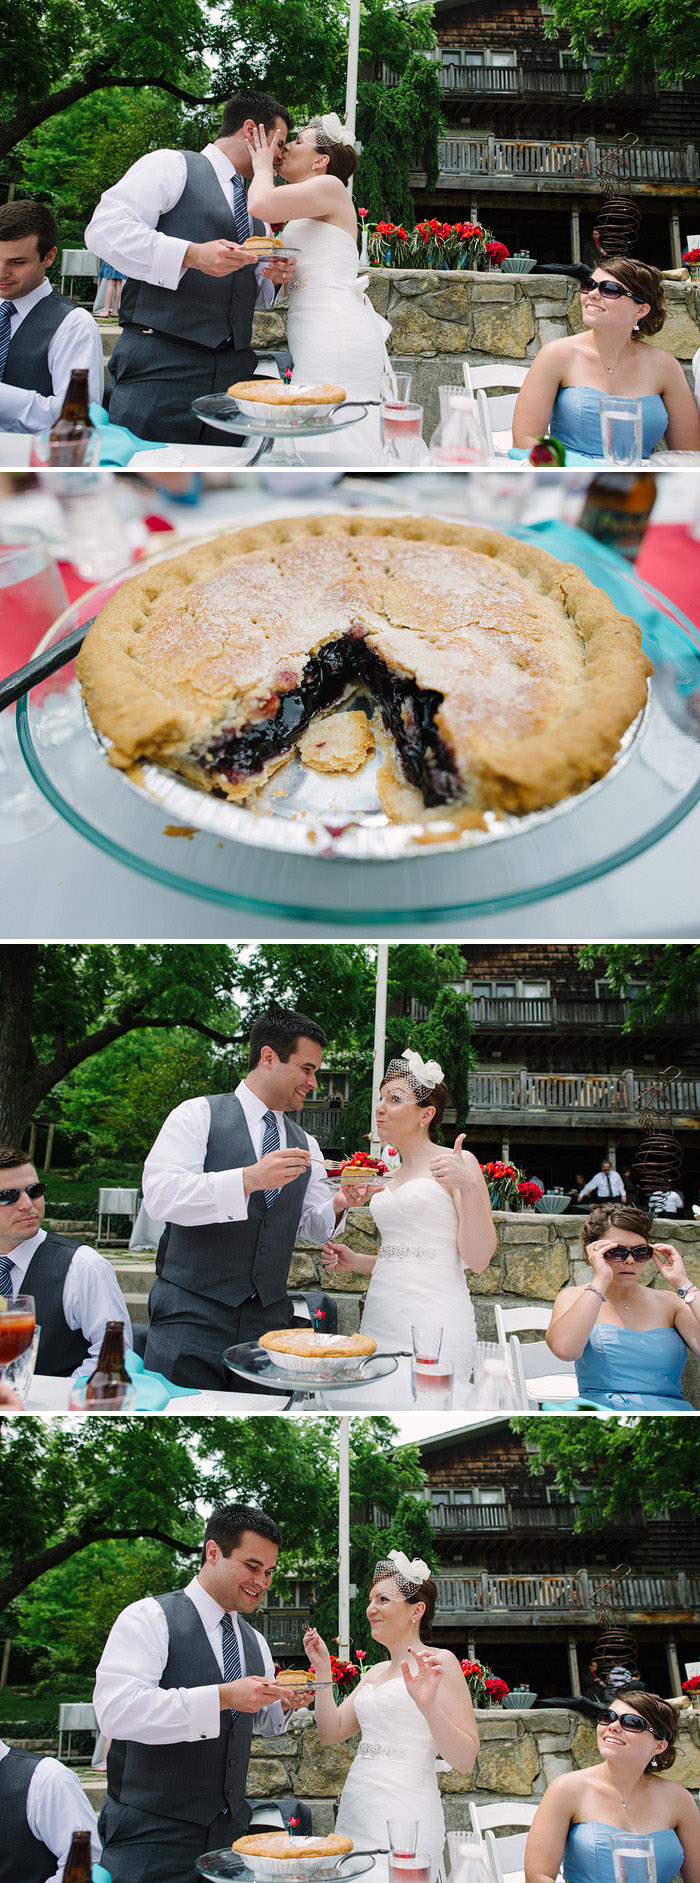 Pie cutting instead of wedding cake.